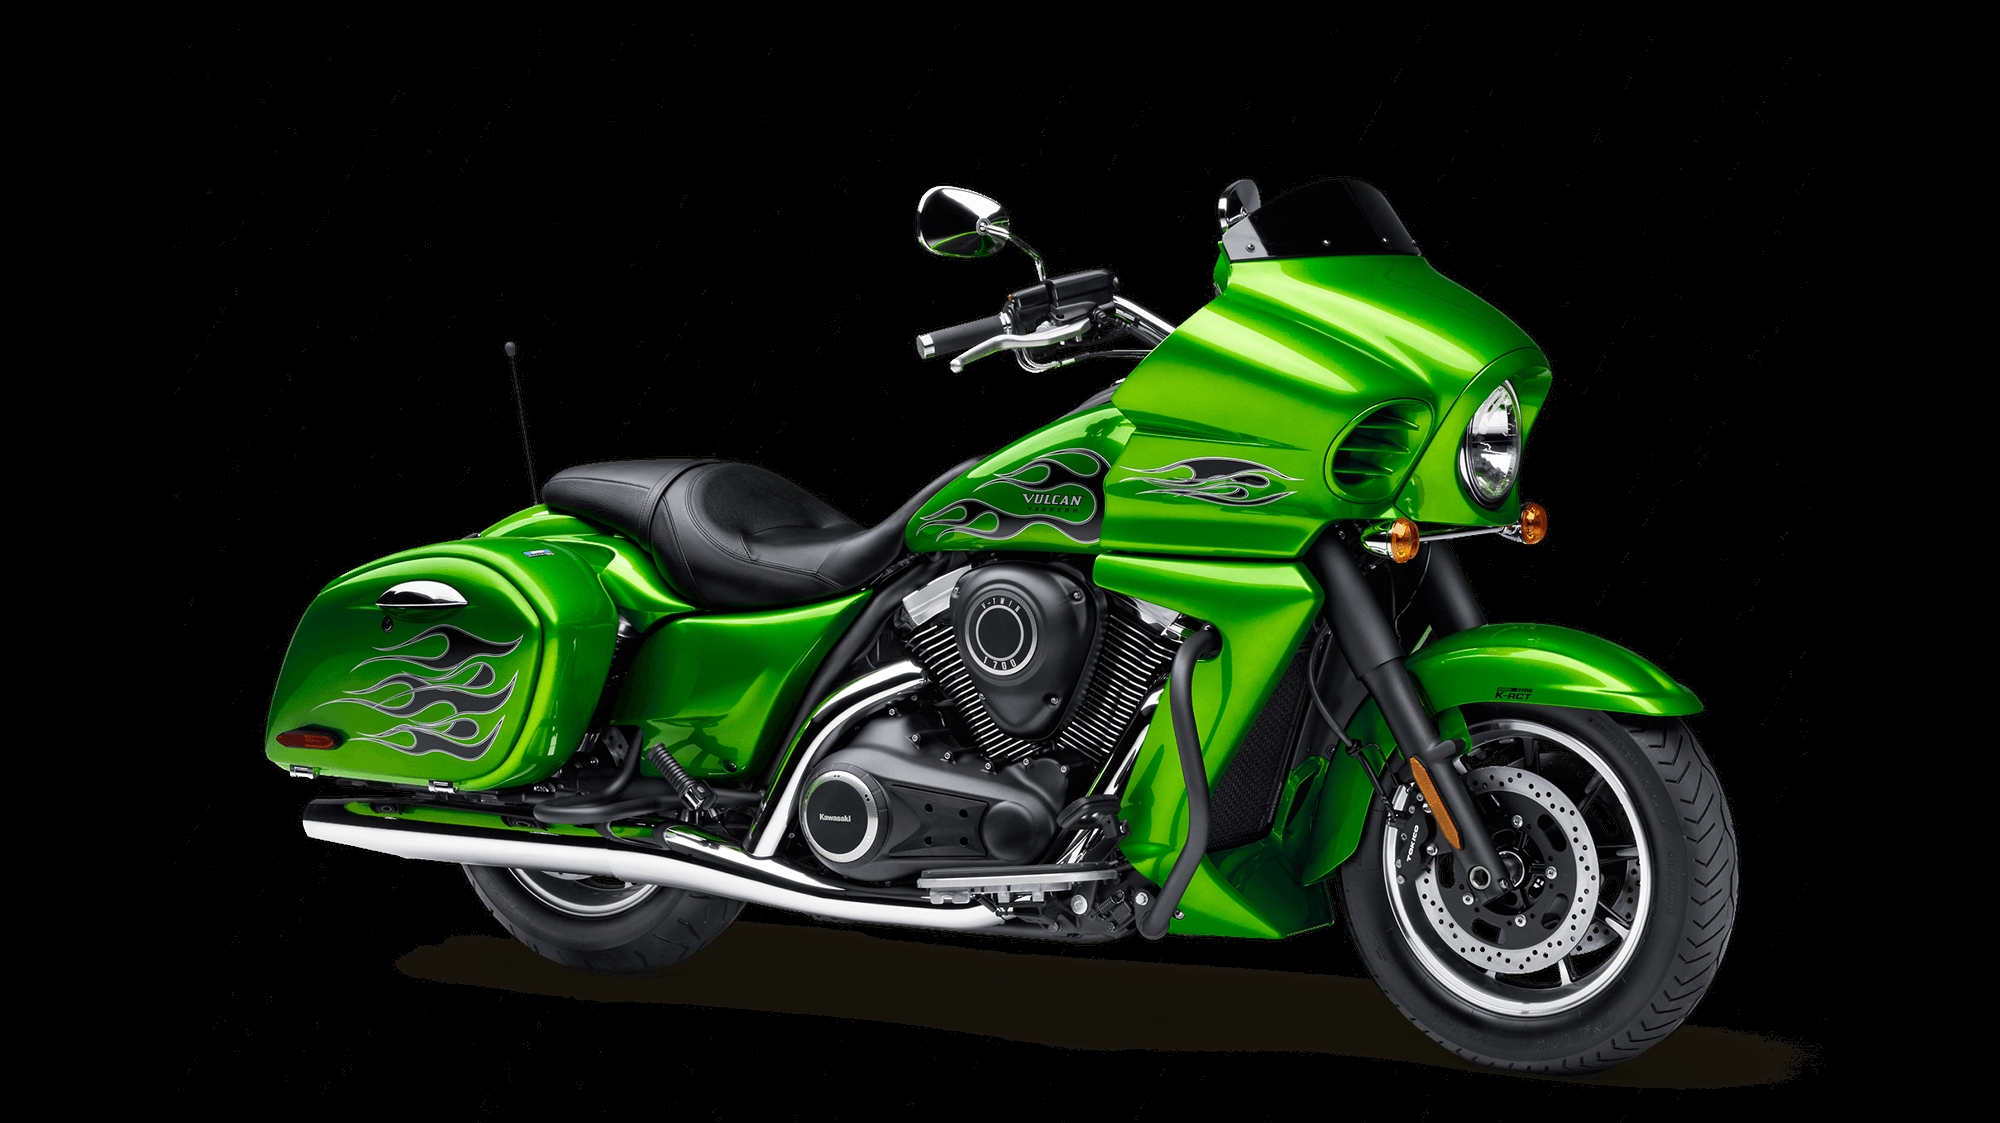 2015 kawasaki vulcan 1700 vaquero abs invoice prices release cars motorcycle invoice price